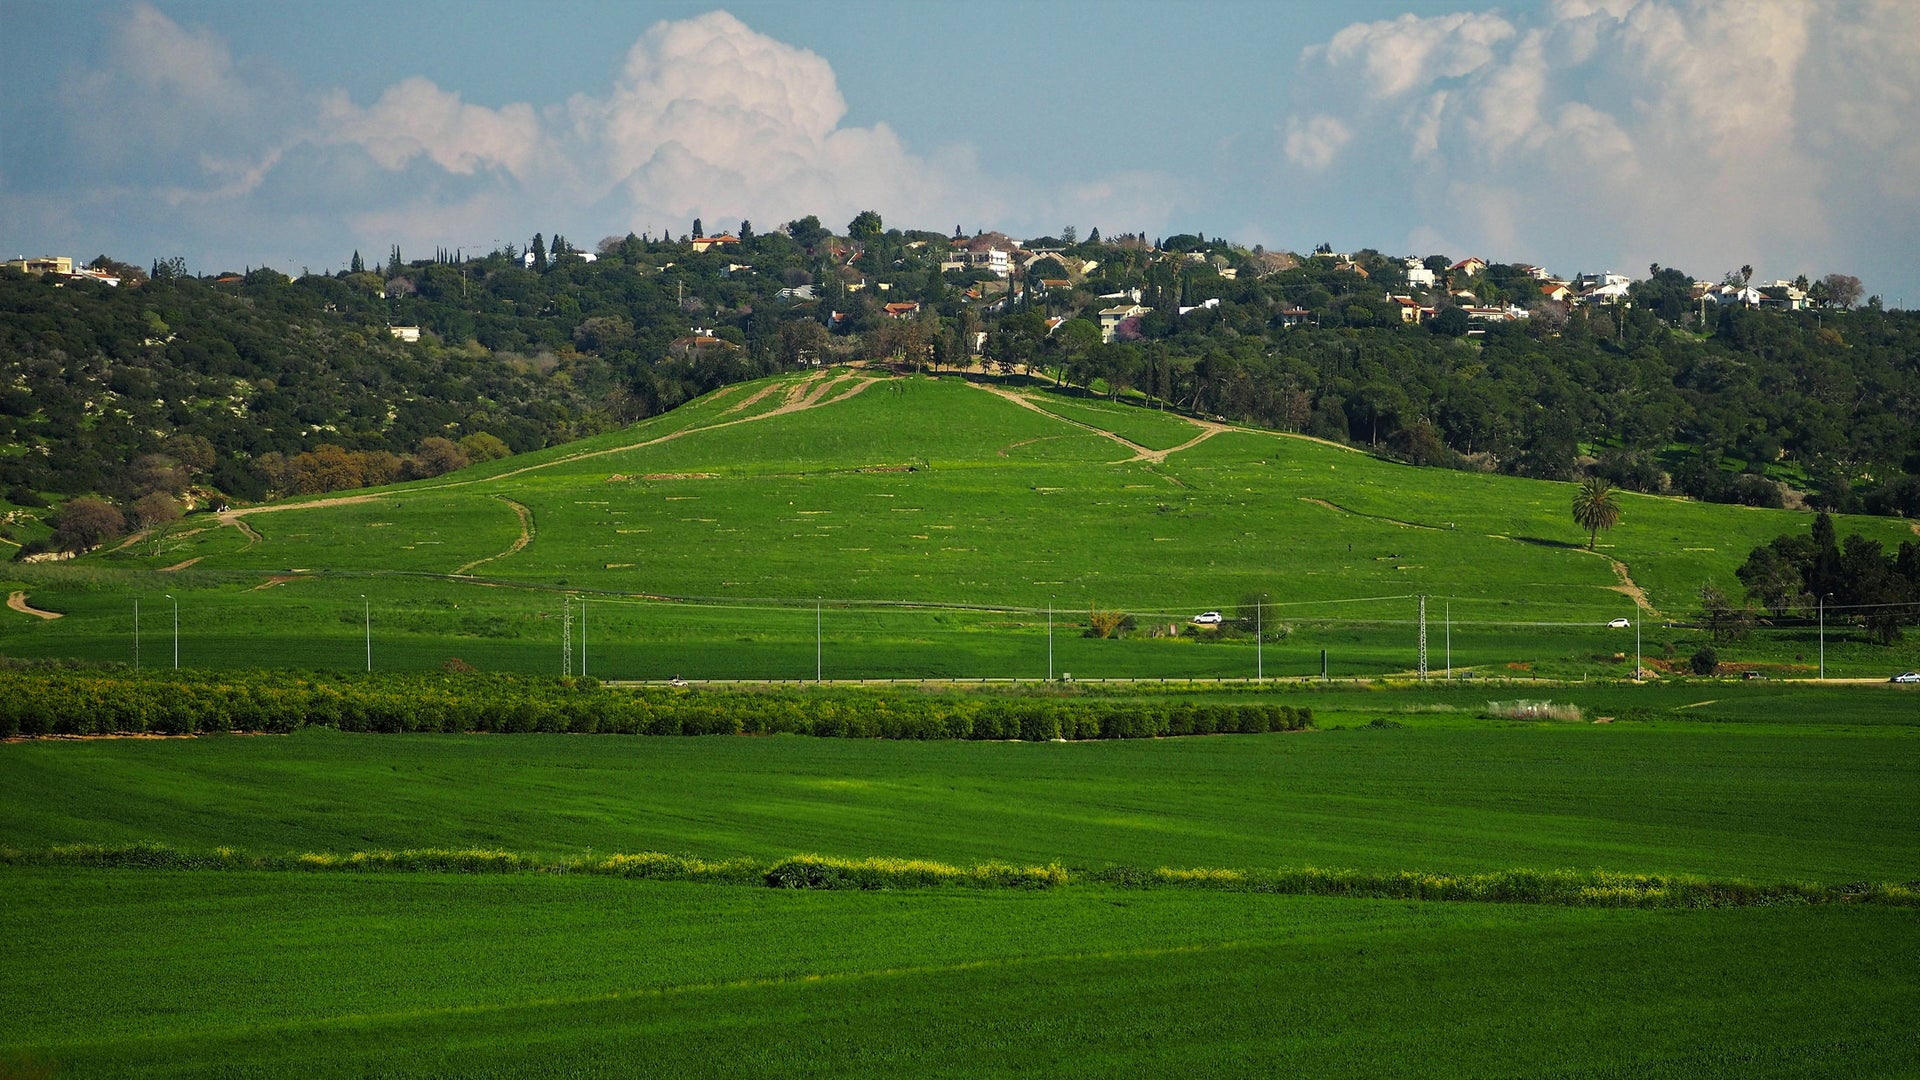 Tel Shimron, a gently sloping hill that hides the last major unexcavated biblical city in Israel.